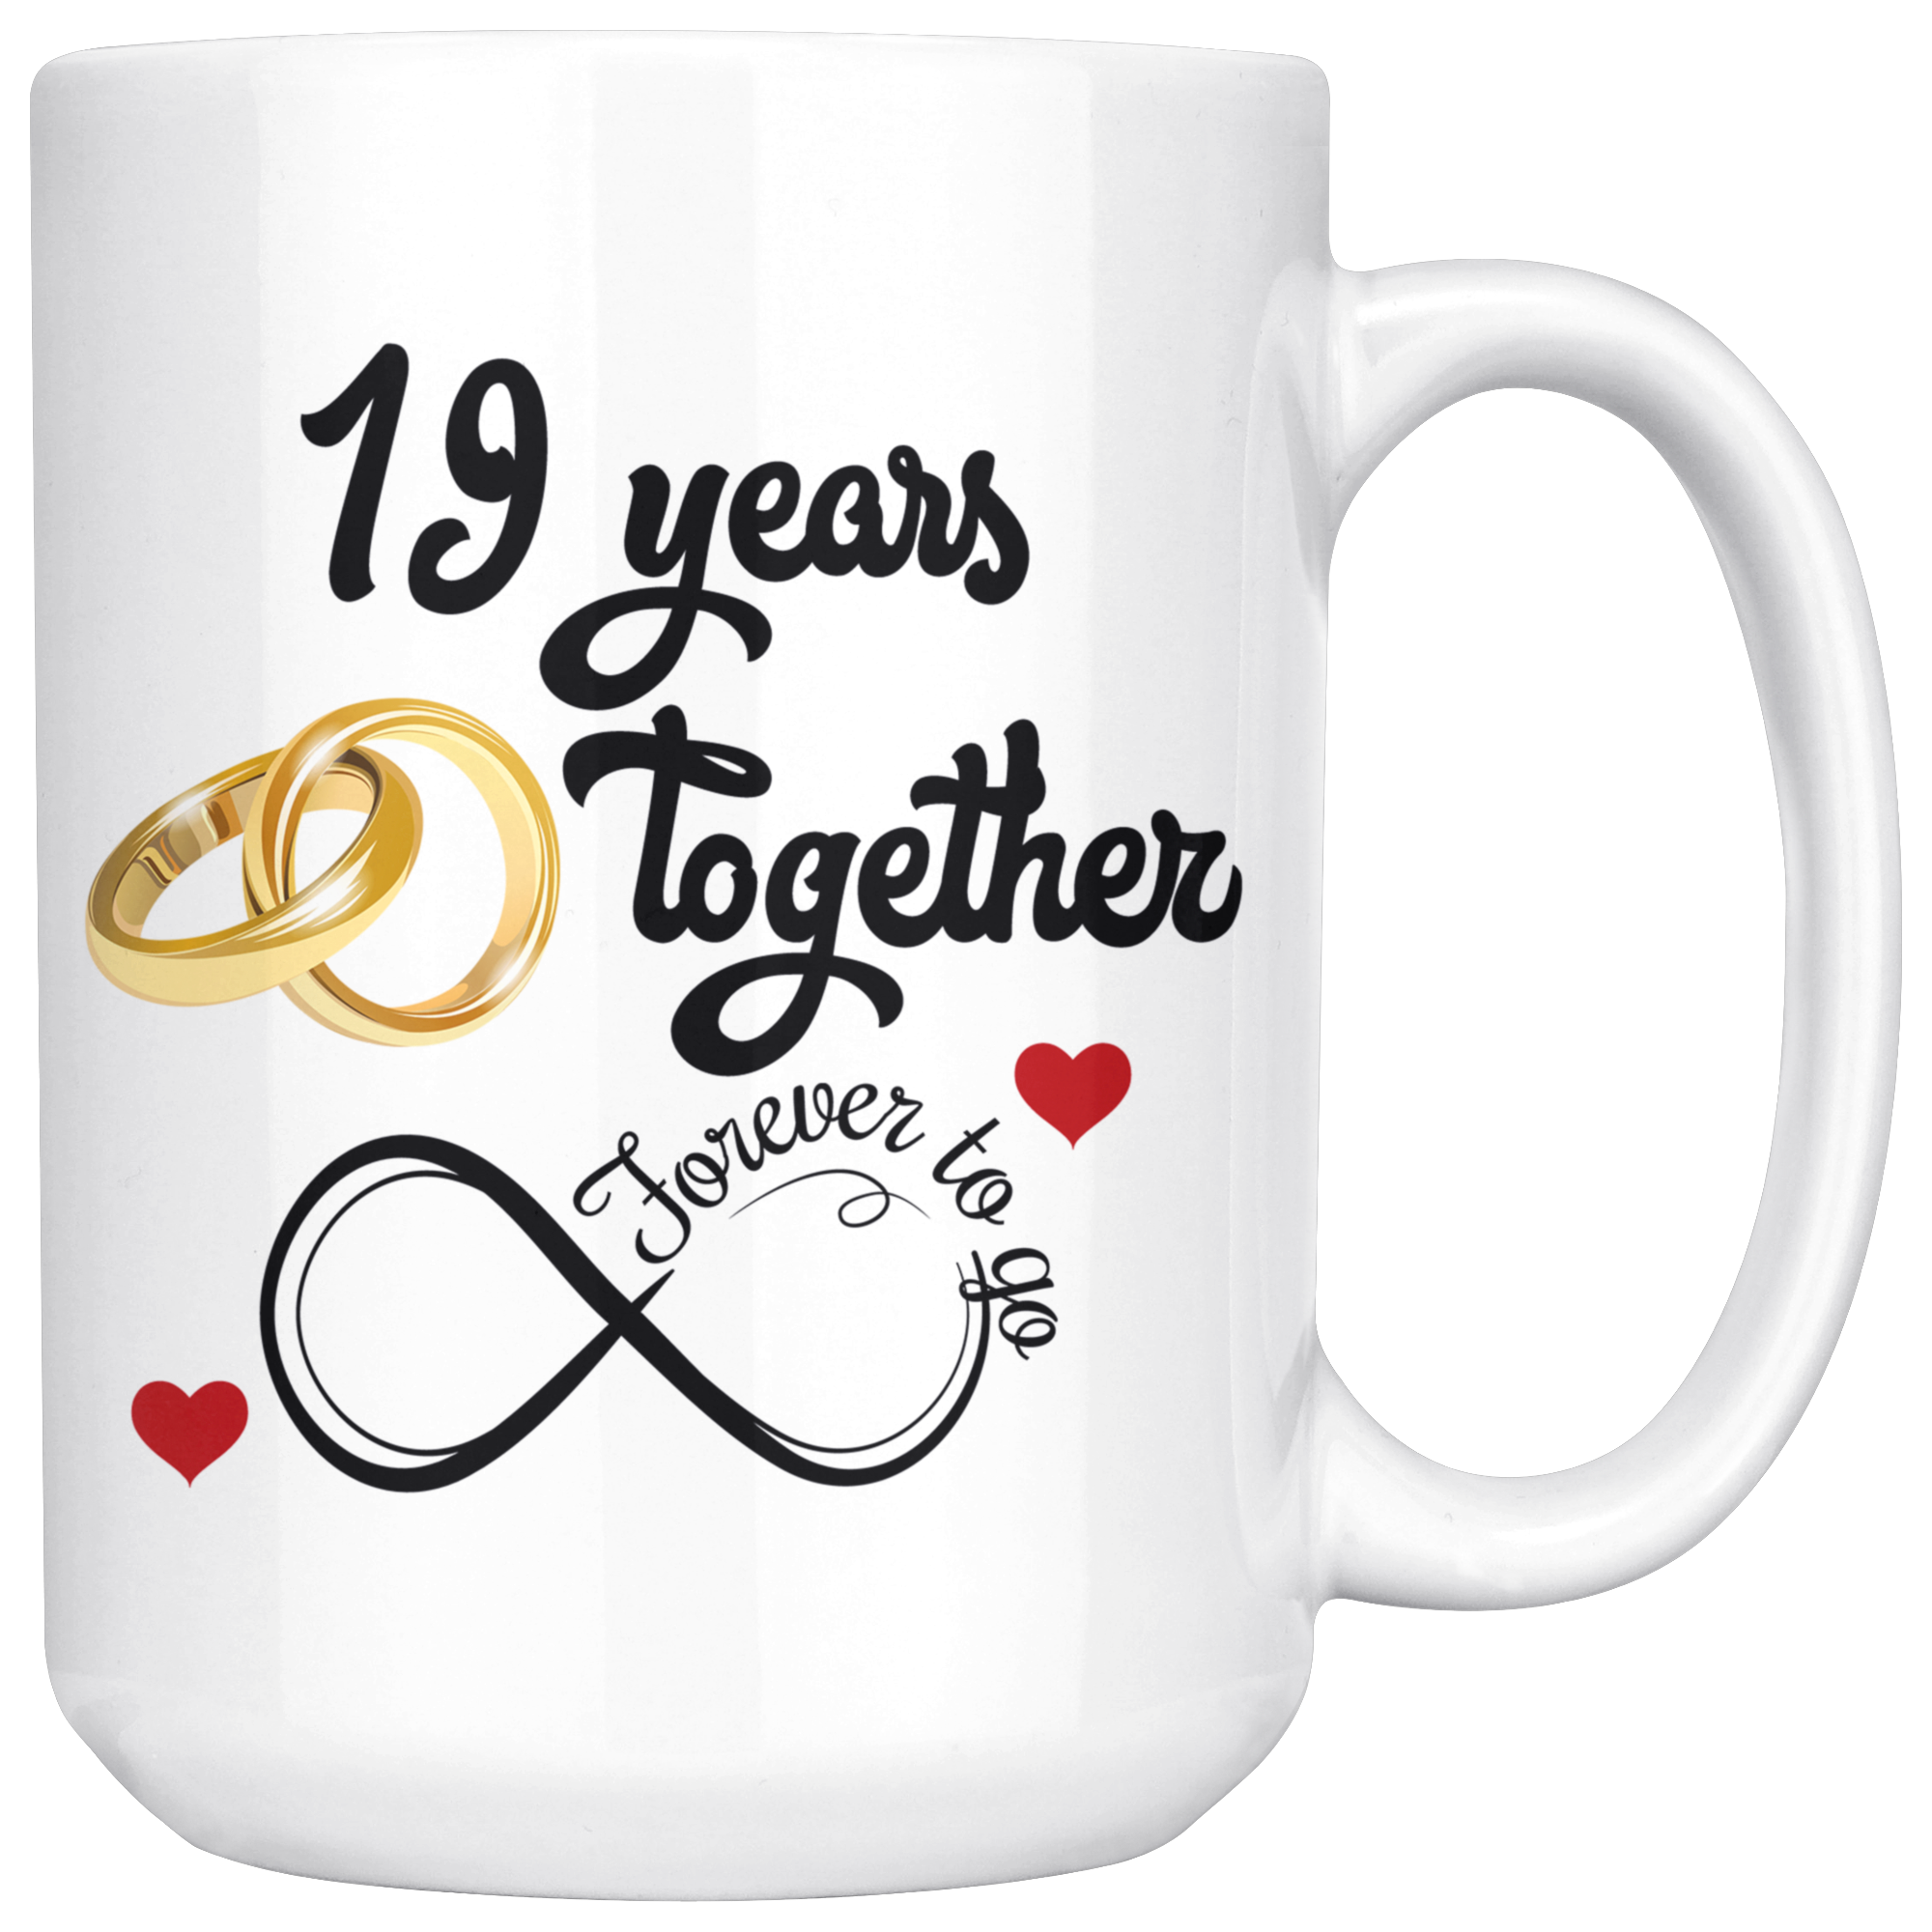 Wedding Gifts By Years: 19th Wedding Anniversary Gift For Him And Her, Married For